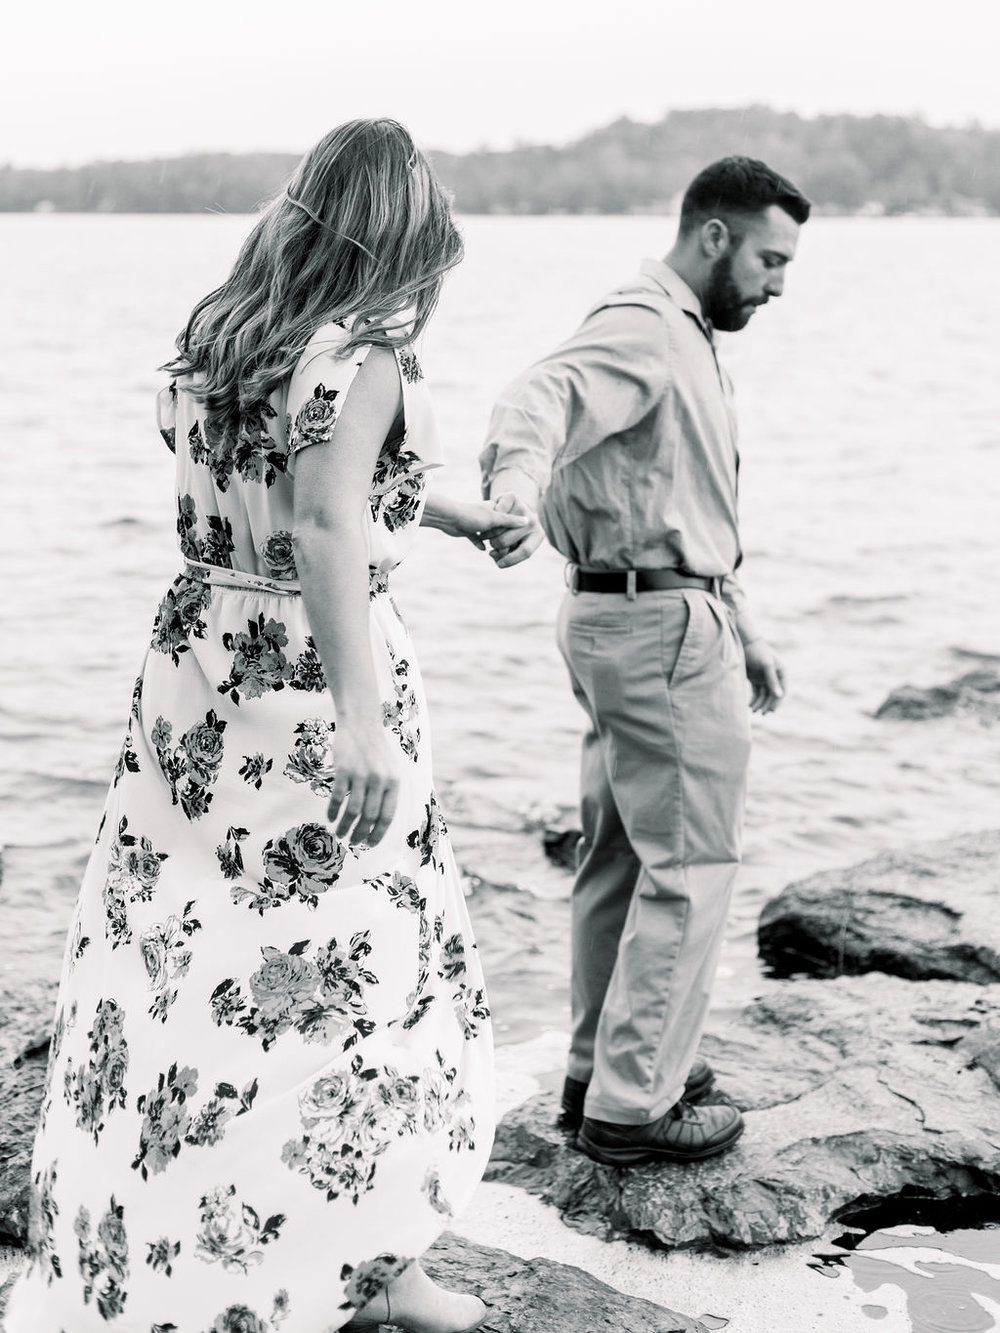 katie_graham_photography_wedding_photographer_jamestown_new_york _bemus_point_erie_pennsylvania_buffalo.jpg